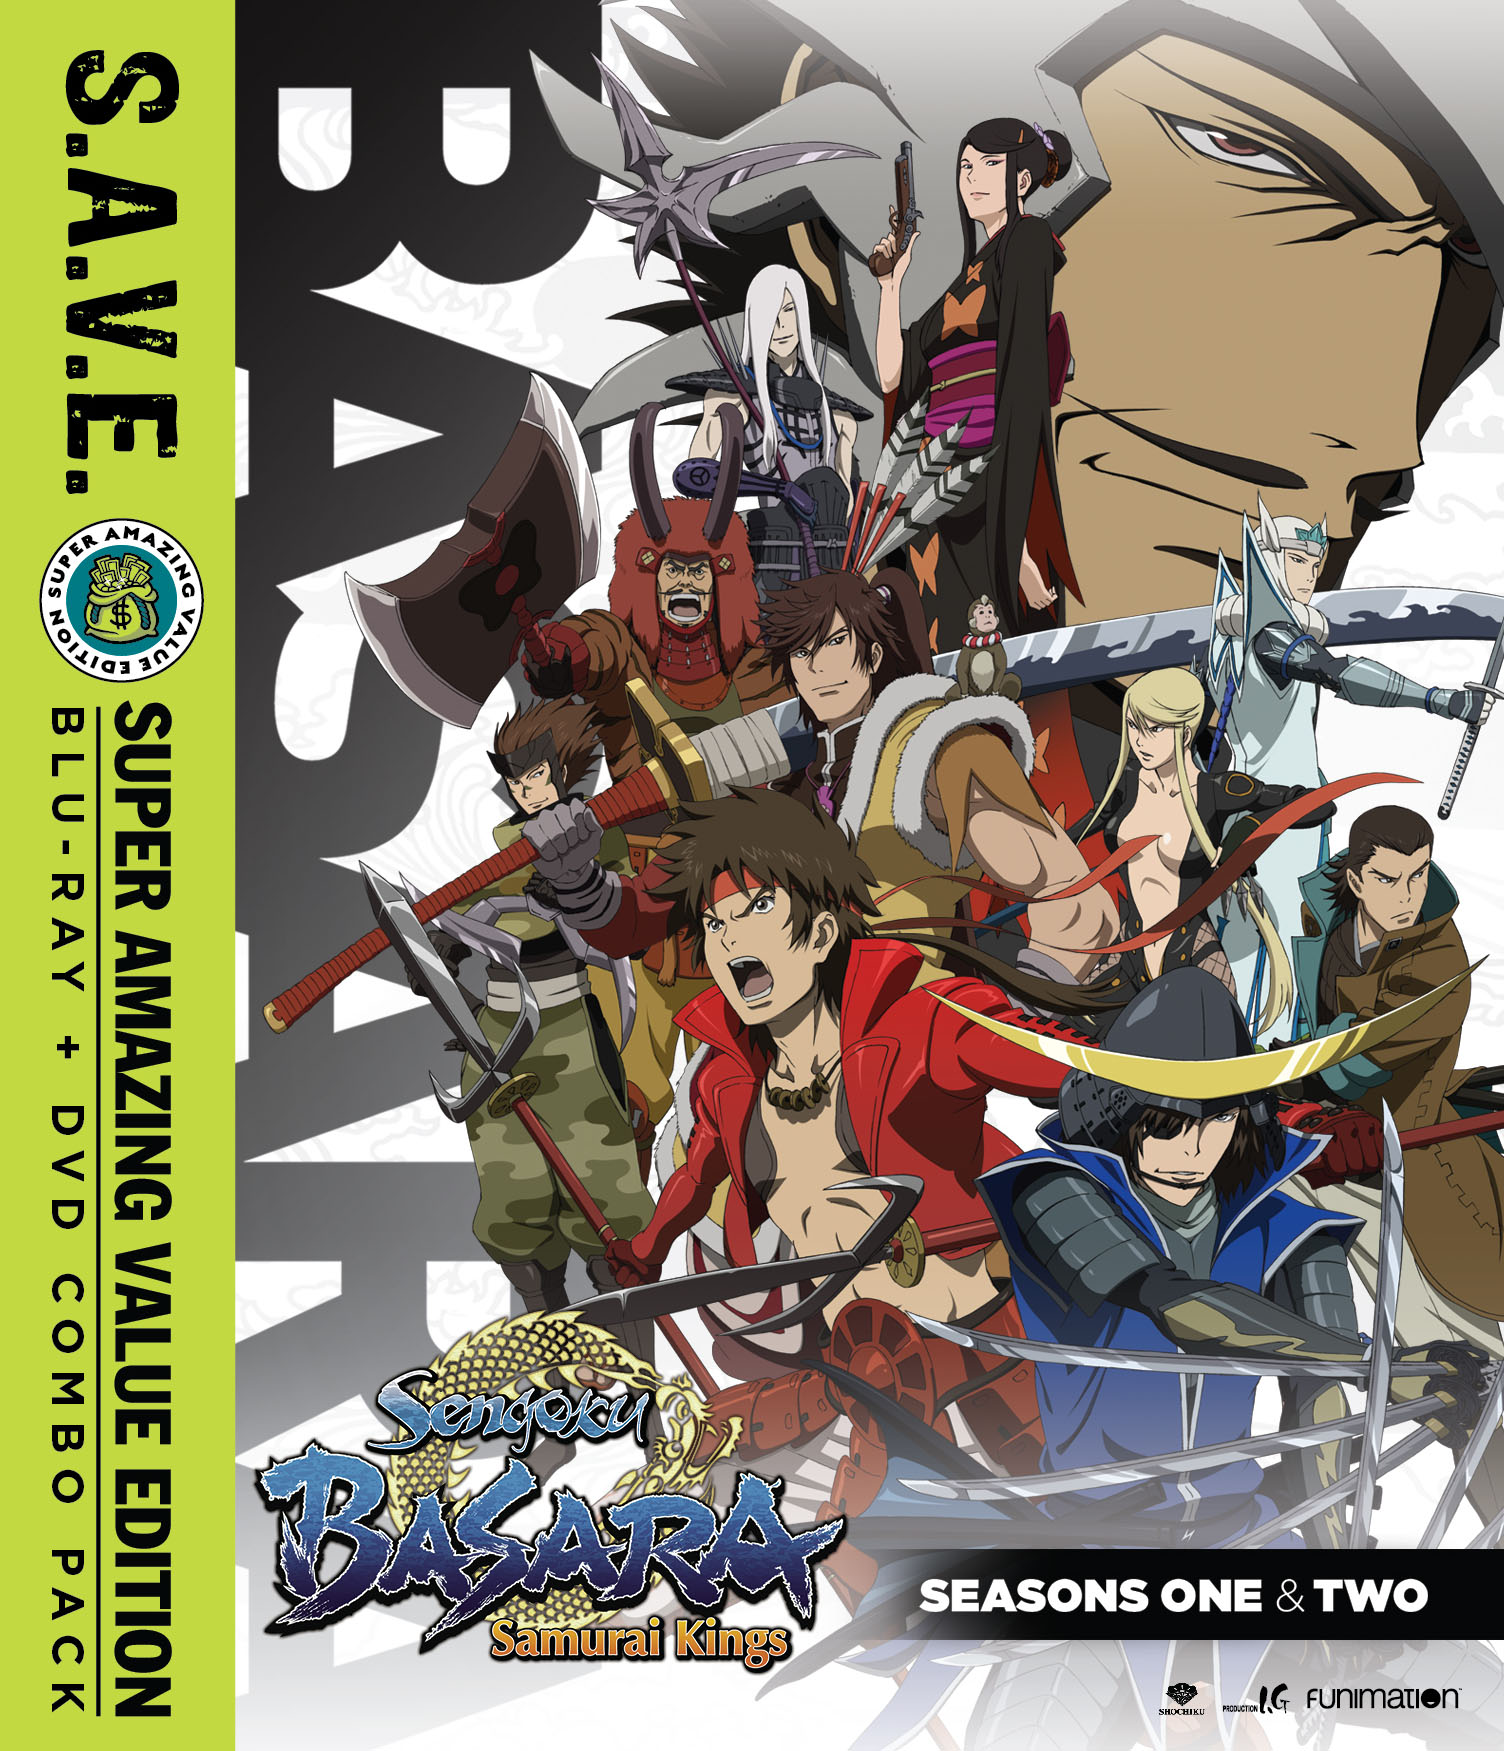 Sengoku Basara Samurai Kings Season 1-2 + OVA SAVE Edition 704400016257